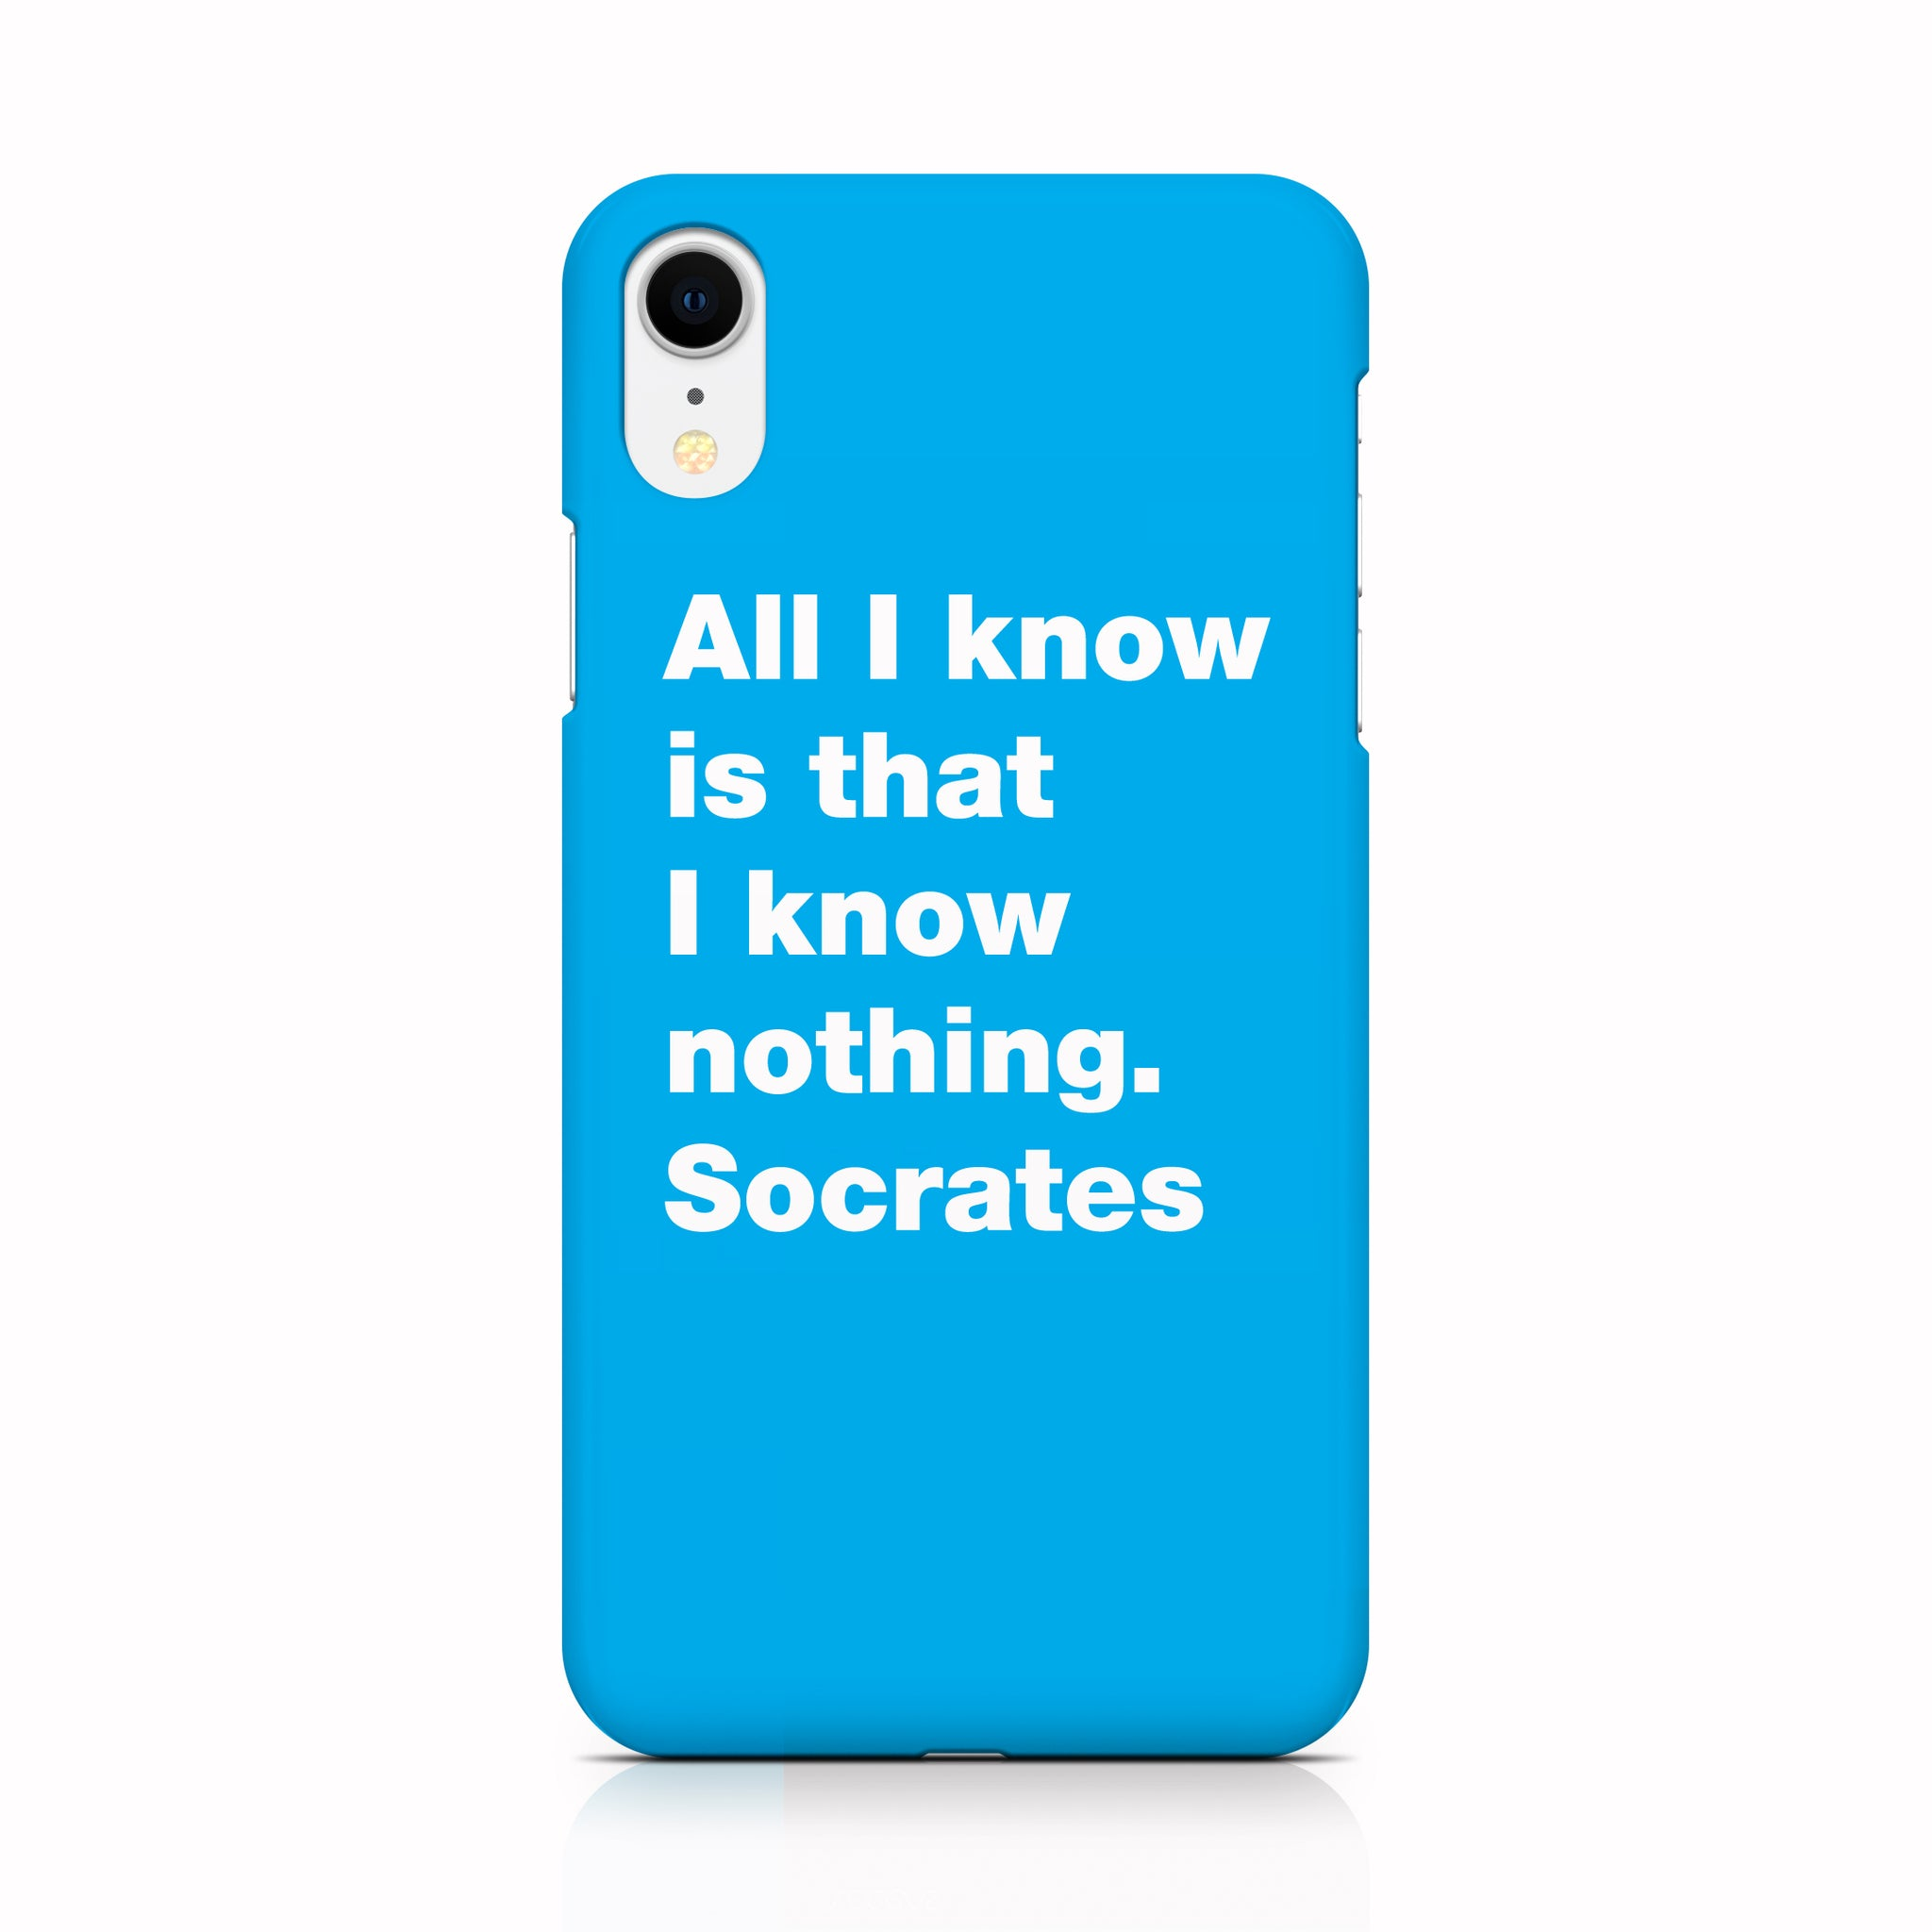 Socrates phone case for iPhone XR